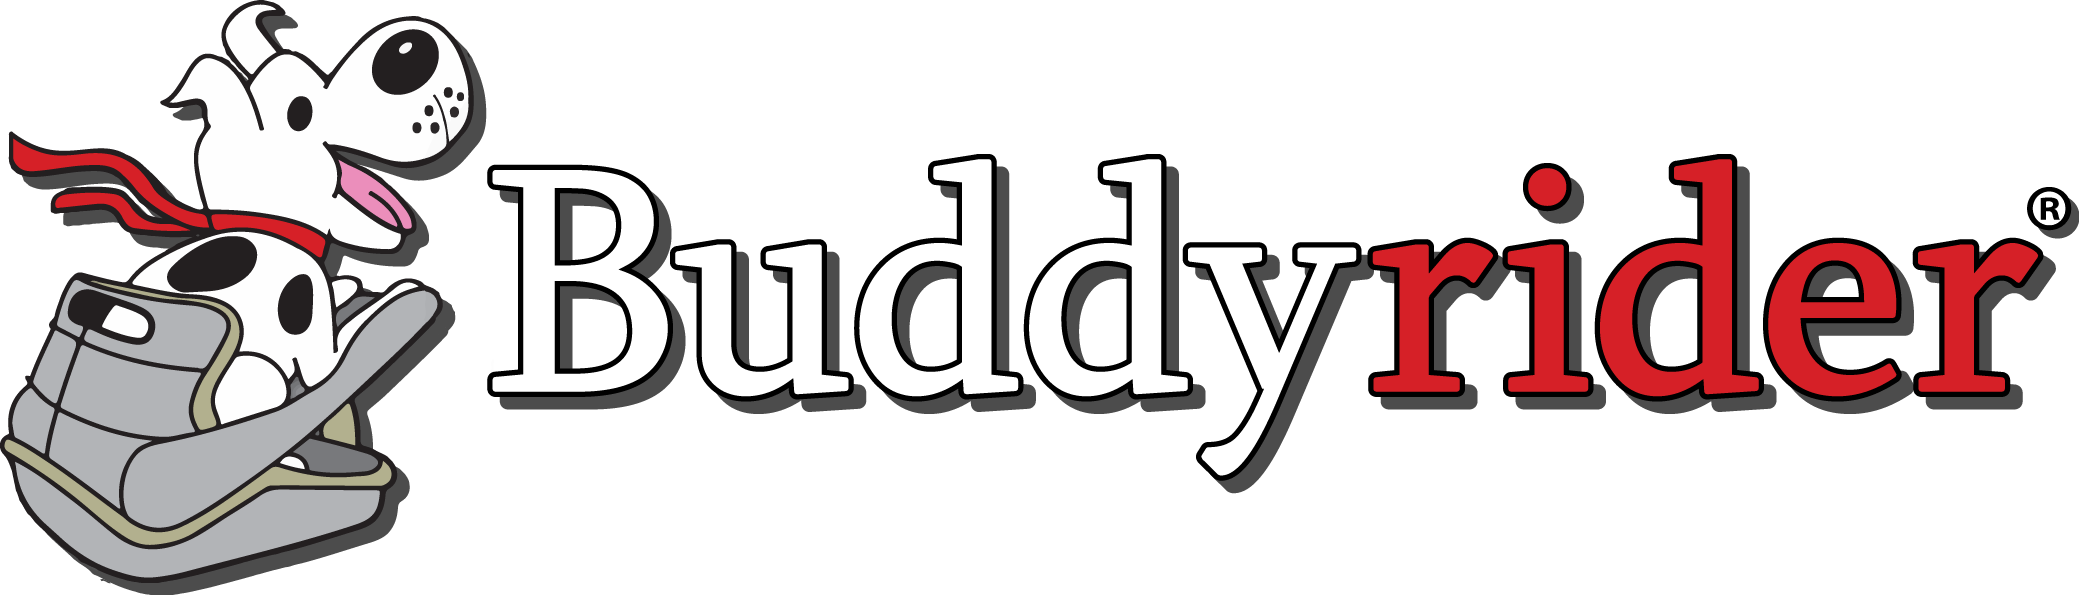 Buddyrider International